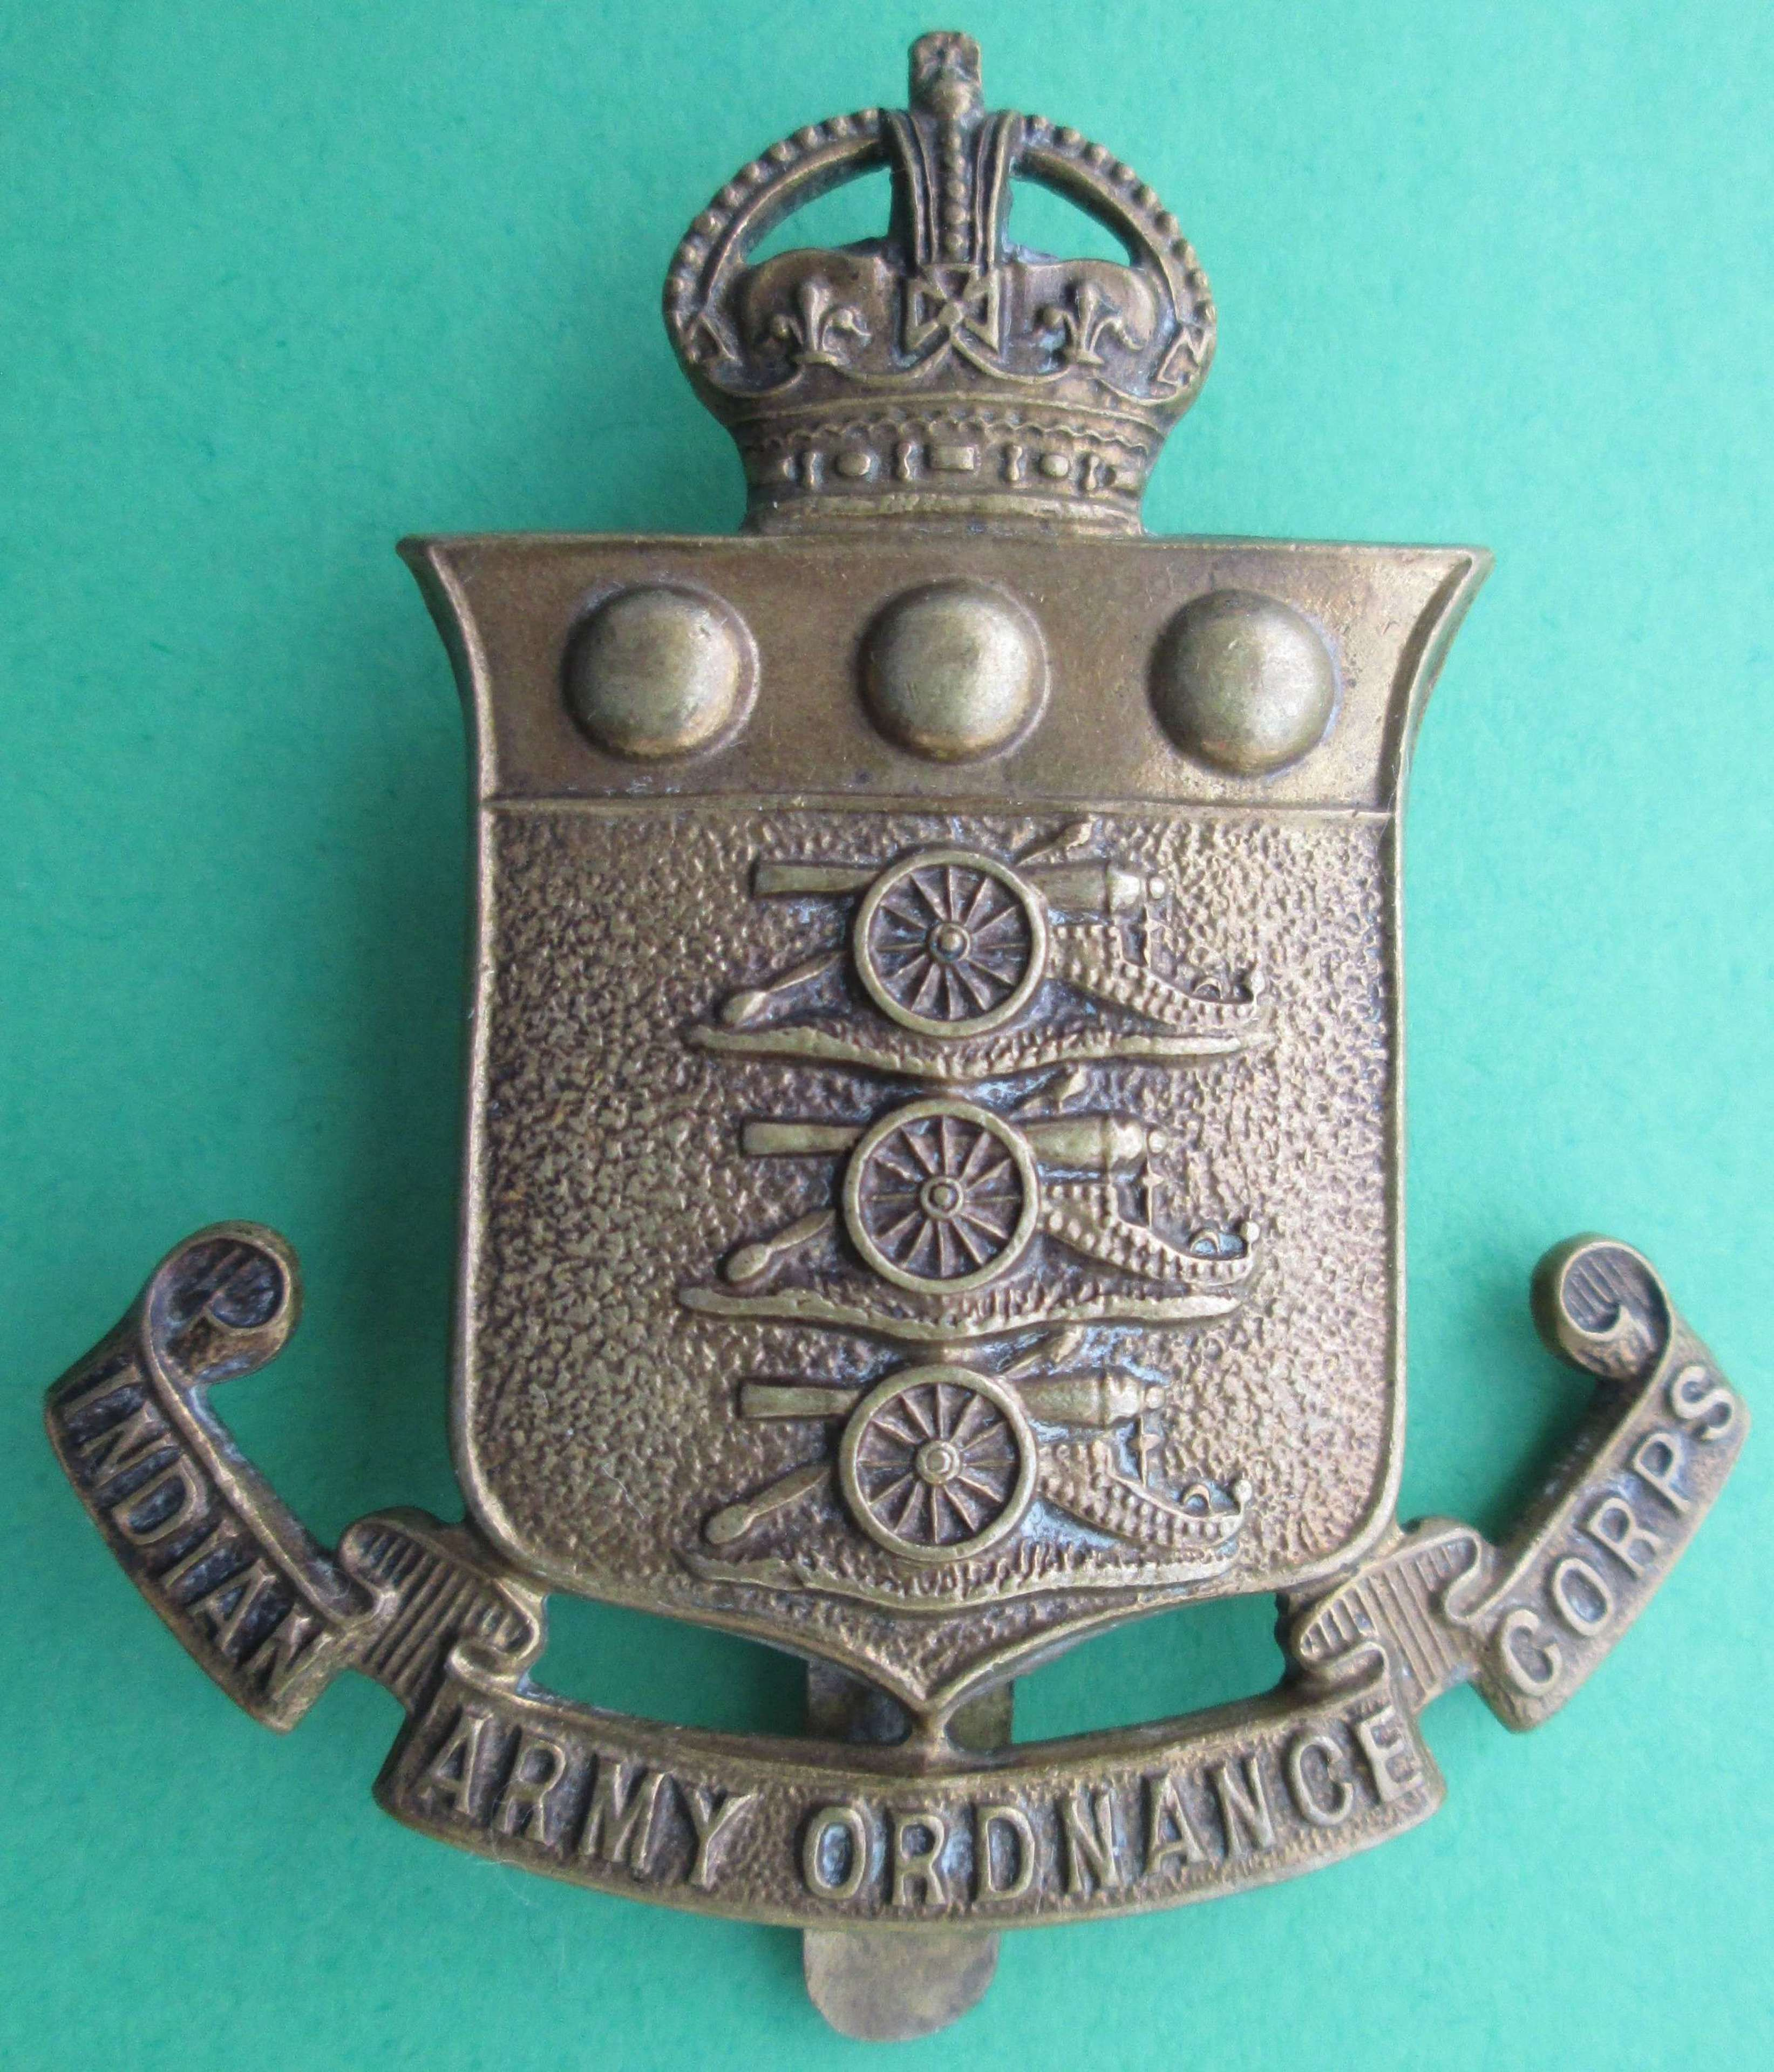 AN INDIAN ARMY ORDNANCE CORPS CAP BADGE